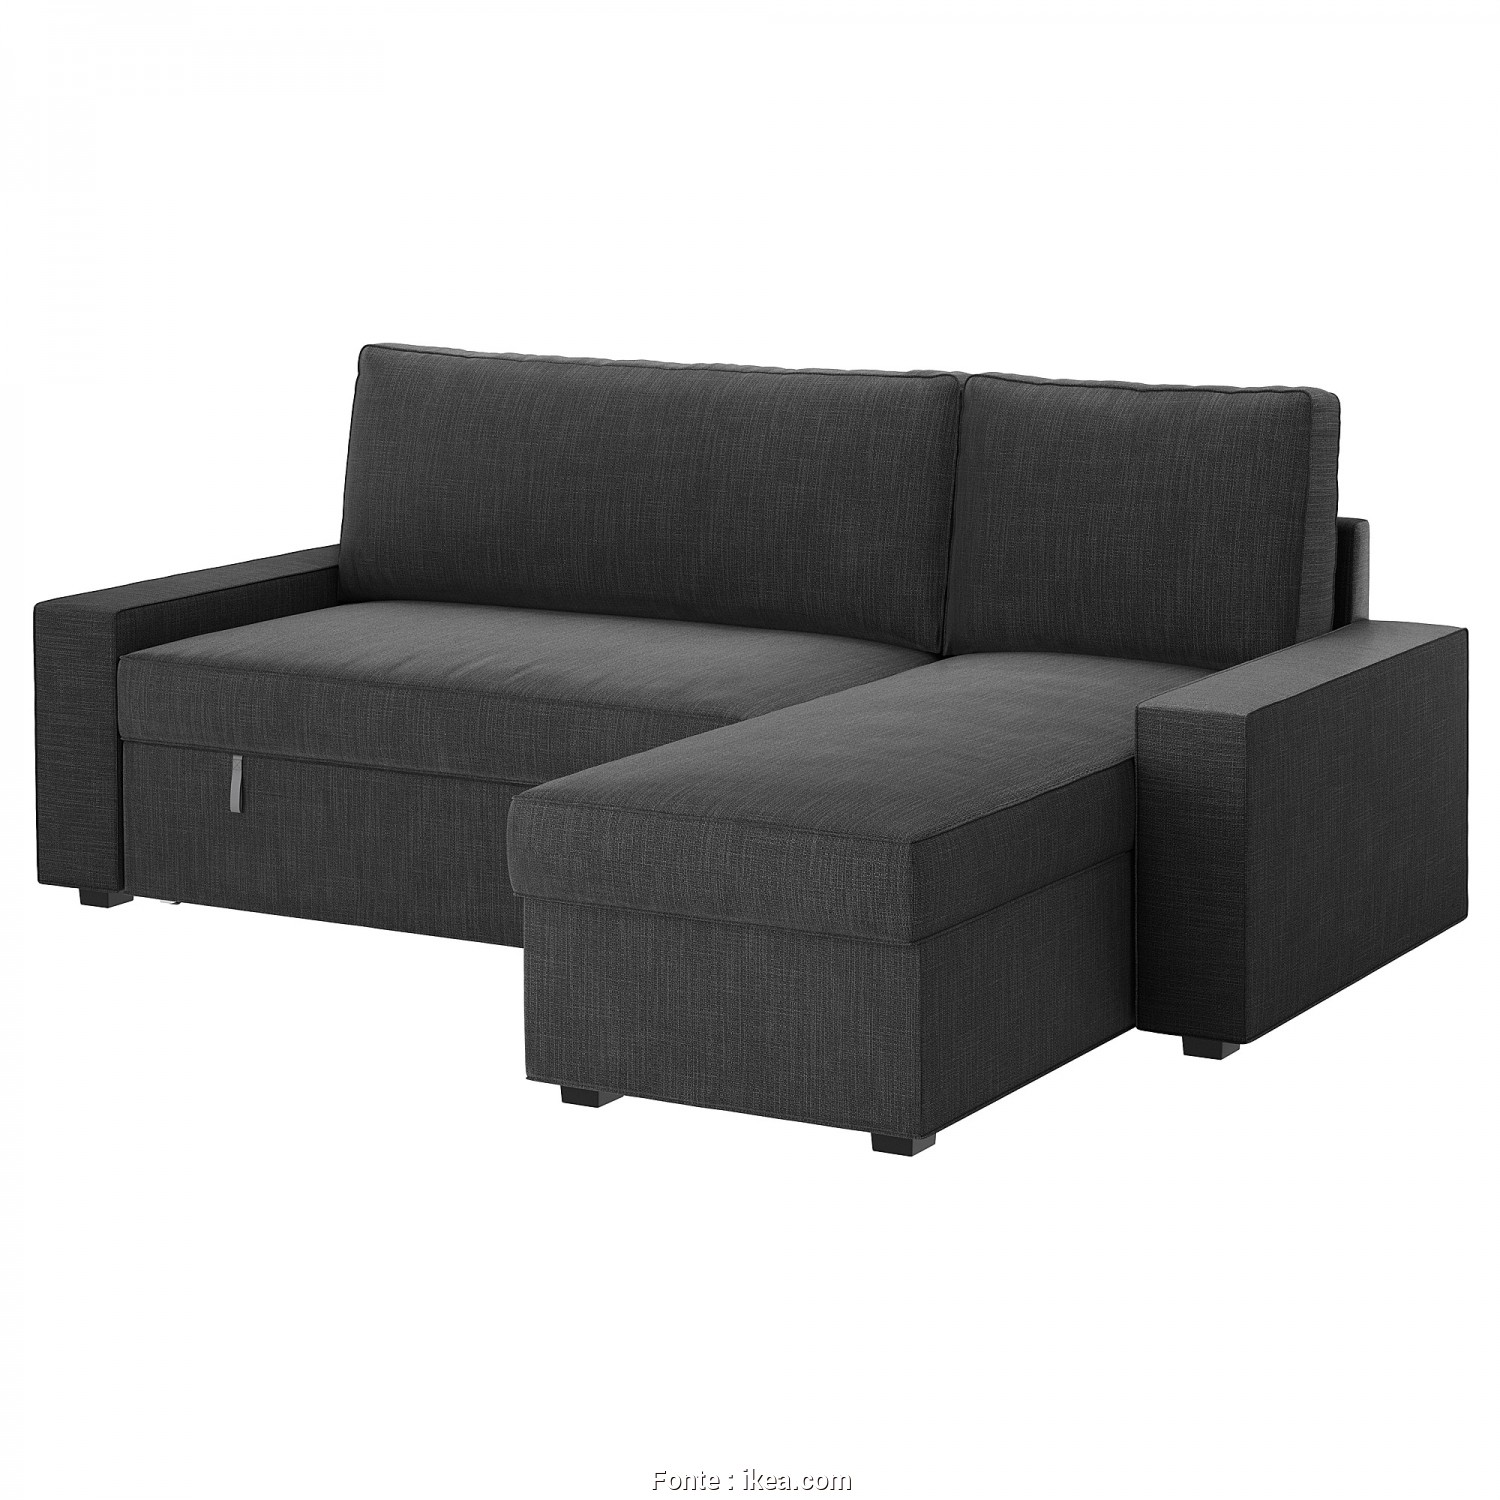 Vilasund Ikea Youtube, Classy VILASUND Cover Sofa-Bed With Chaise Longue Hillared Anthracite